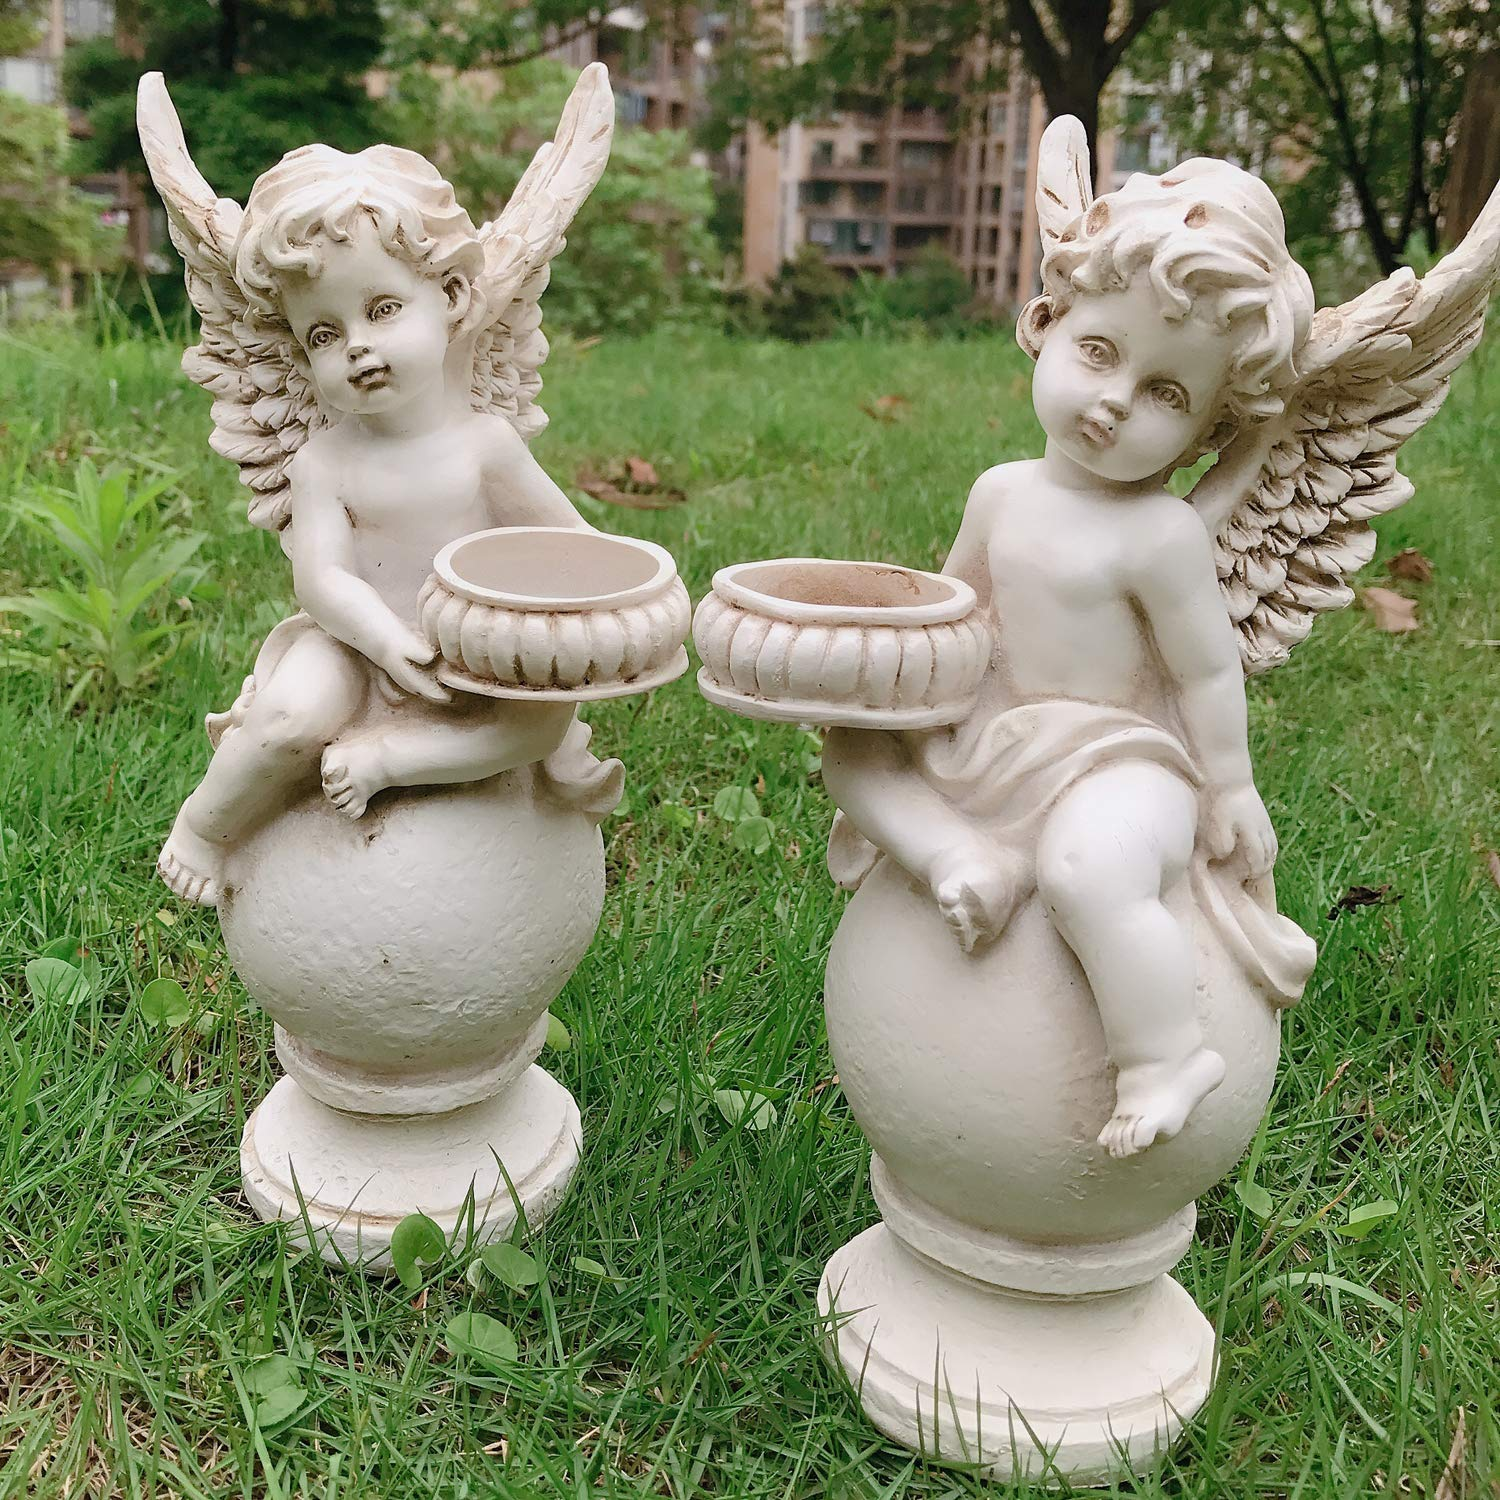 OwMell Set of 2 Cherubs Angels Statue Candle Holder, 9.5 Inch Weathered Antique Resin Angels Garden Statue Figurine for Indoor Outdoor Patio Garden Decorations